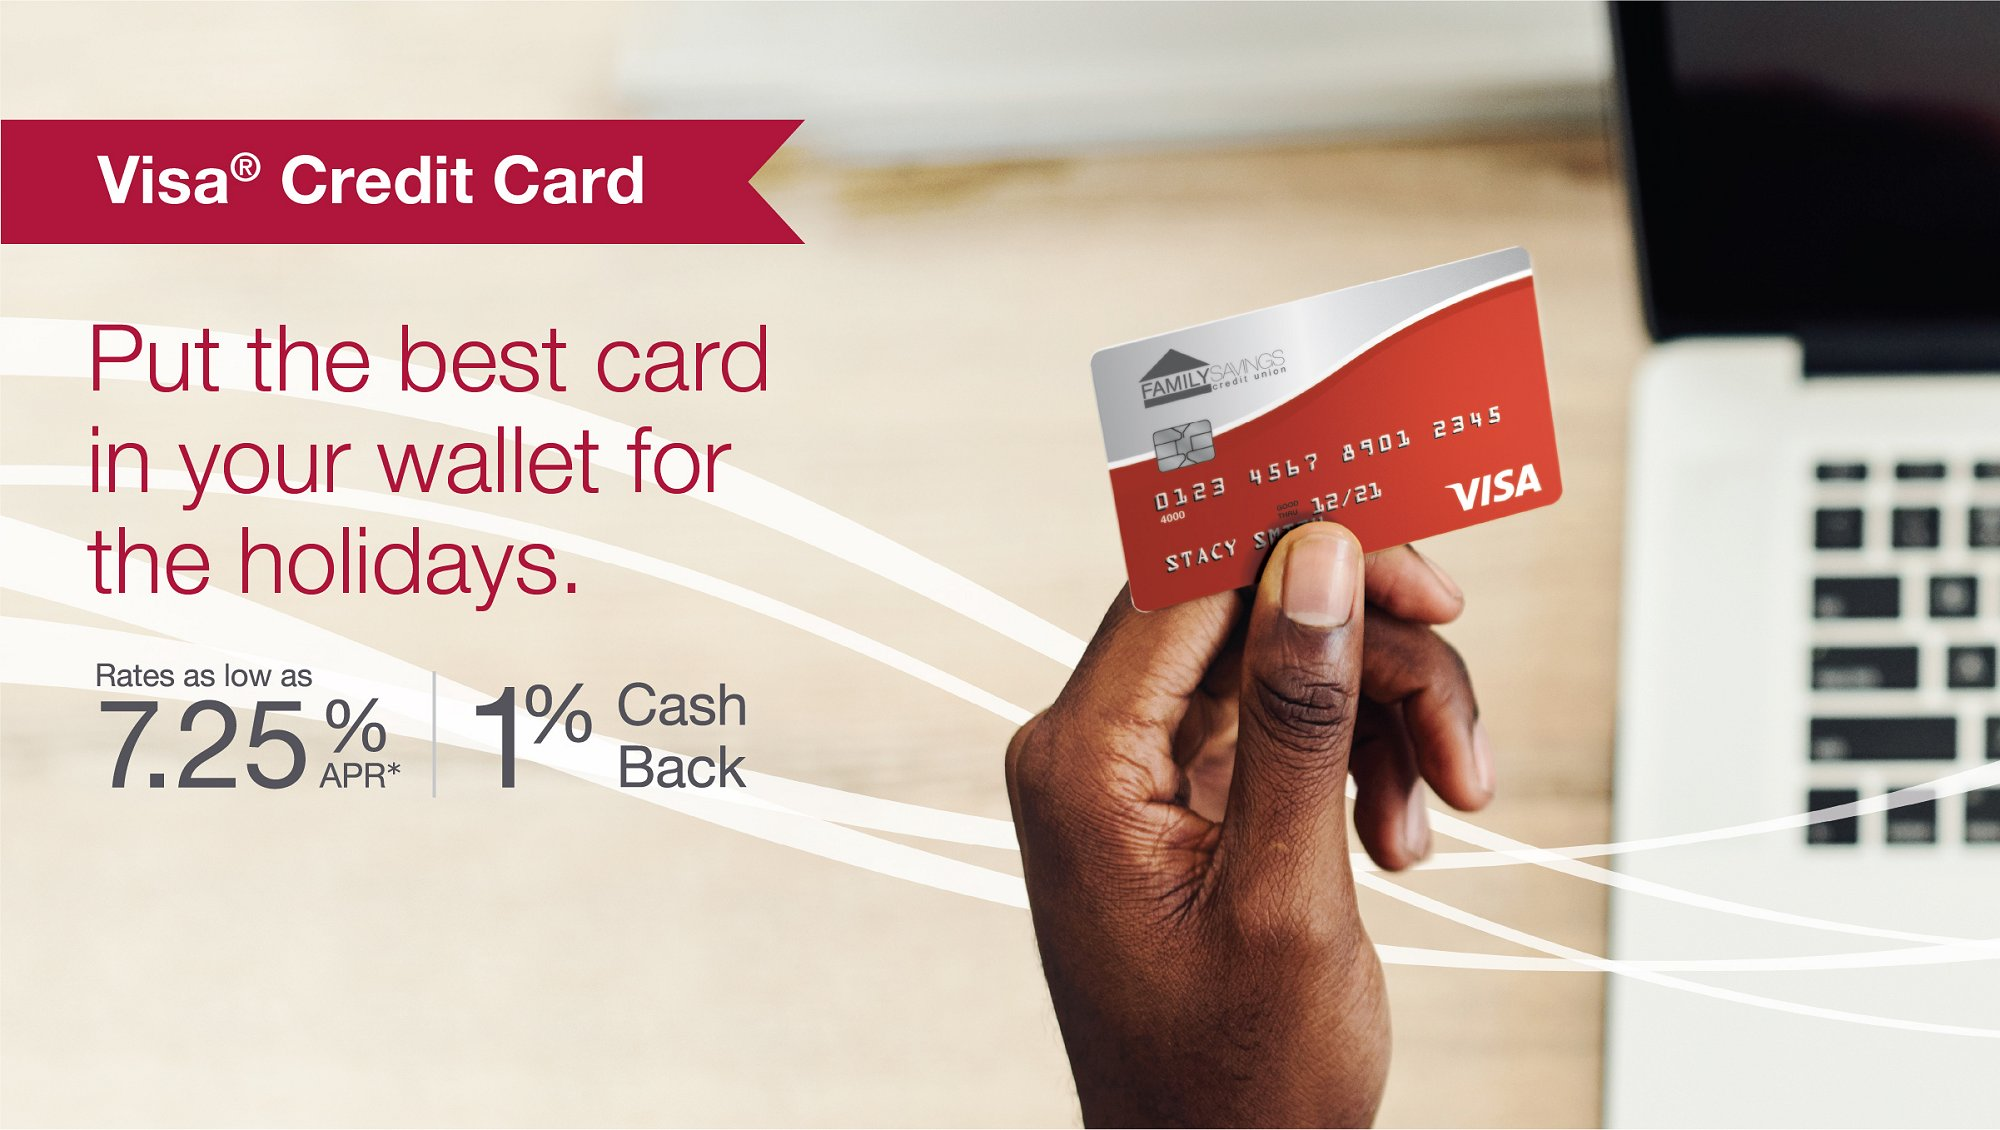 Put the best card in your wallet for the holidays.